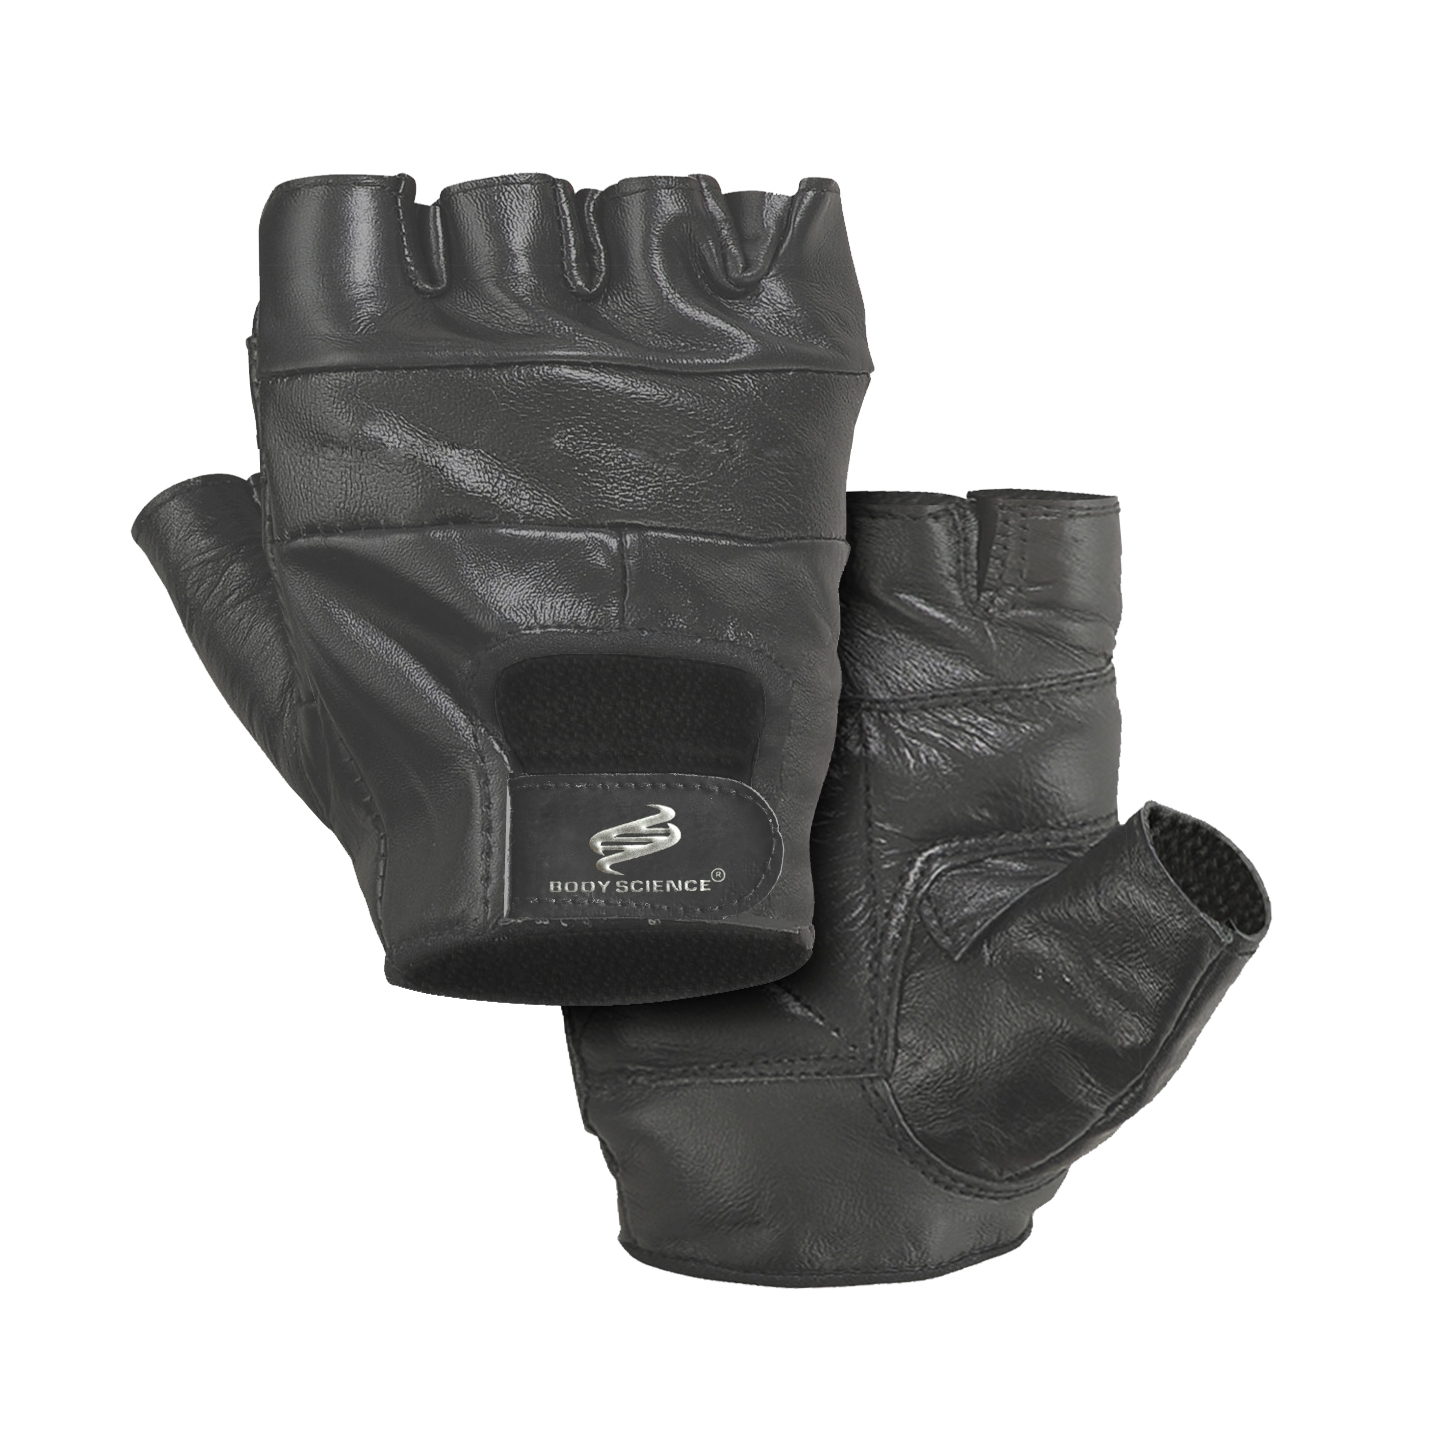 Träningshandskar – Body Science Training Gloves, XLarge - Träningstillbehör - Body Science